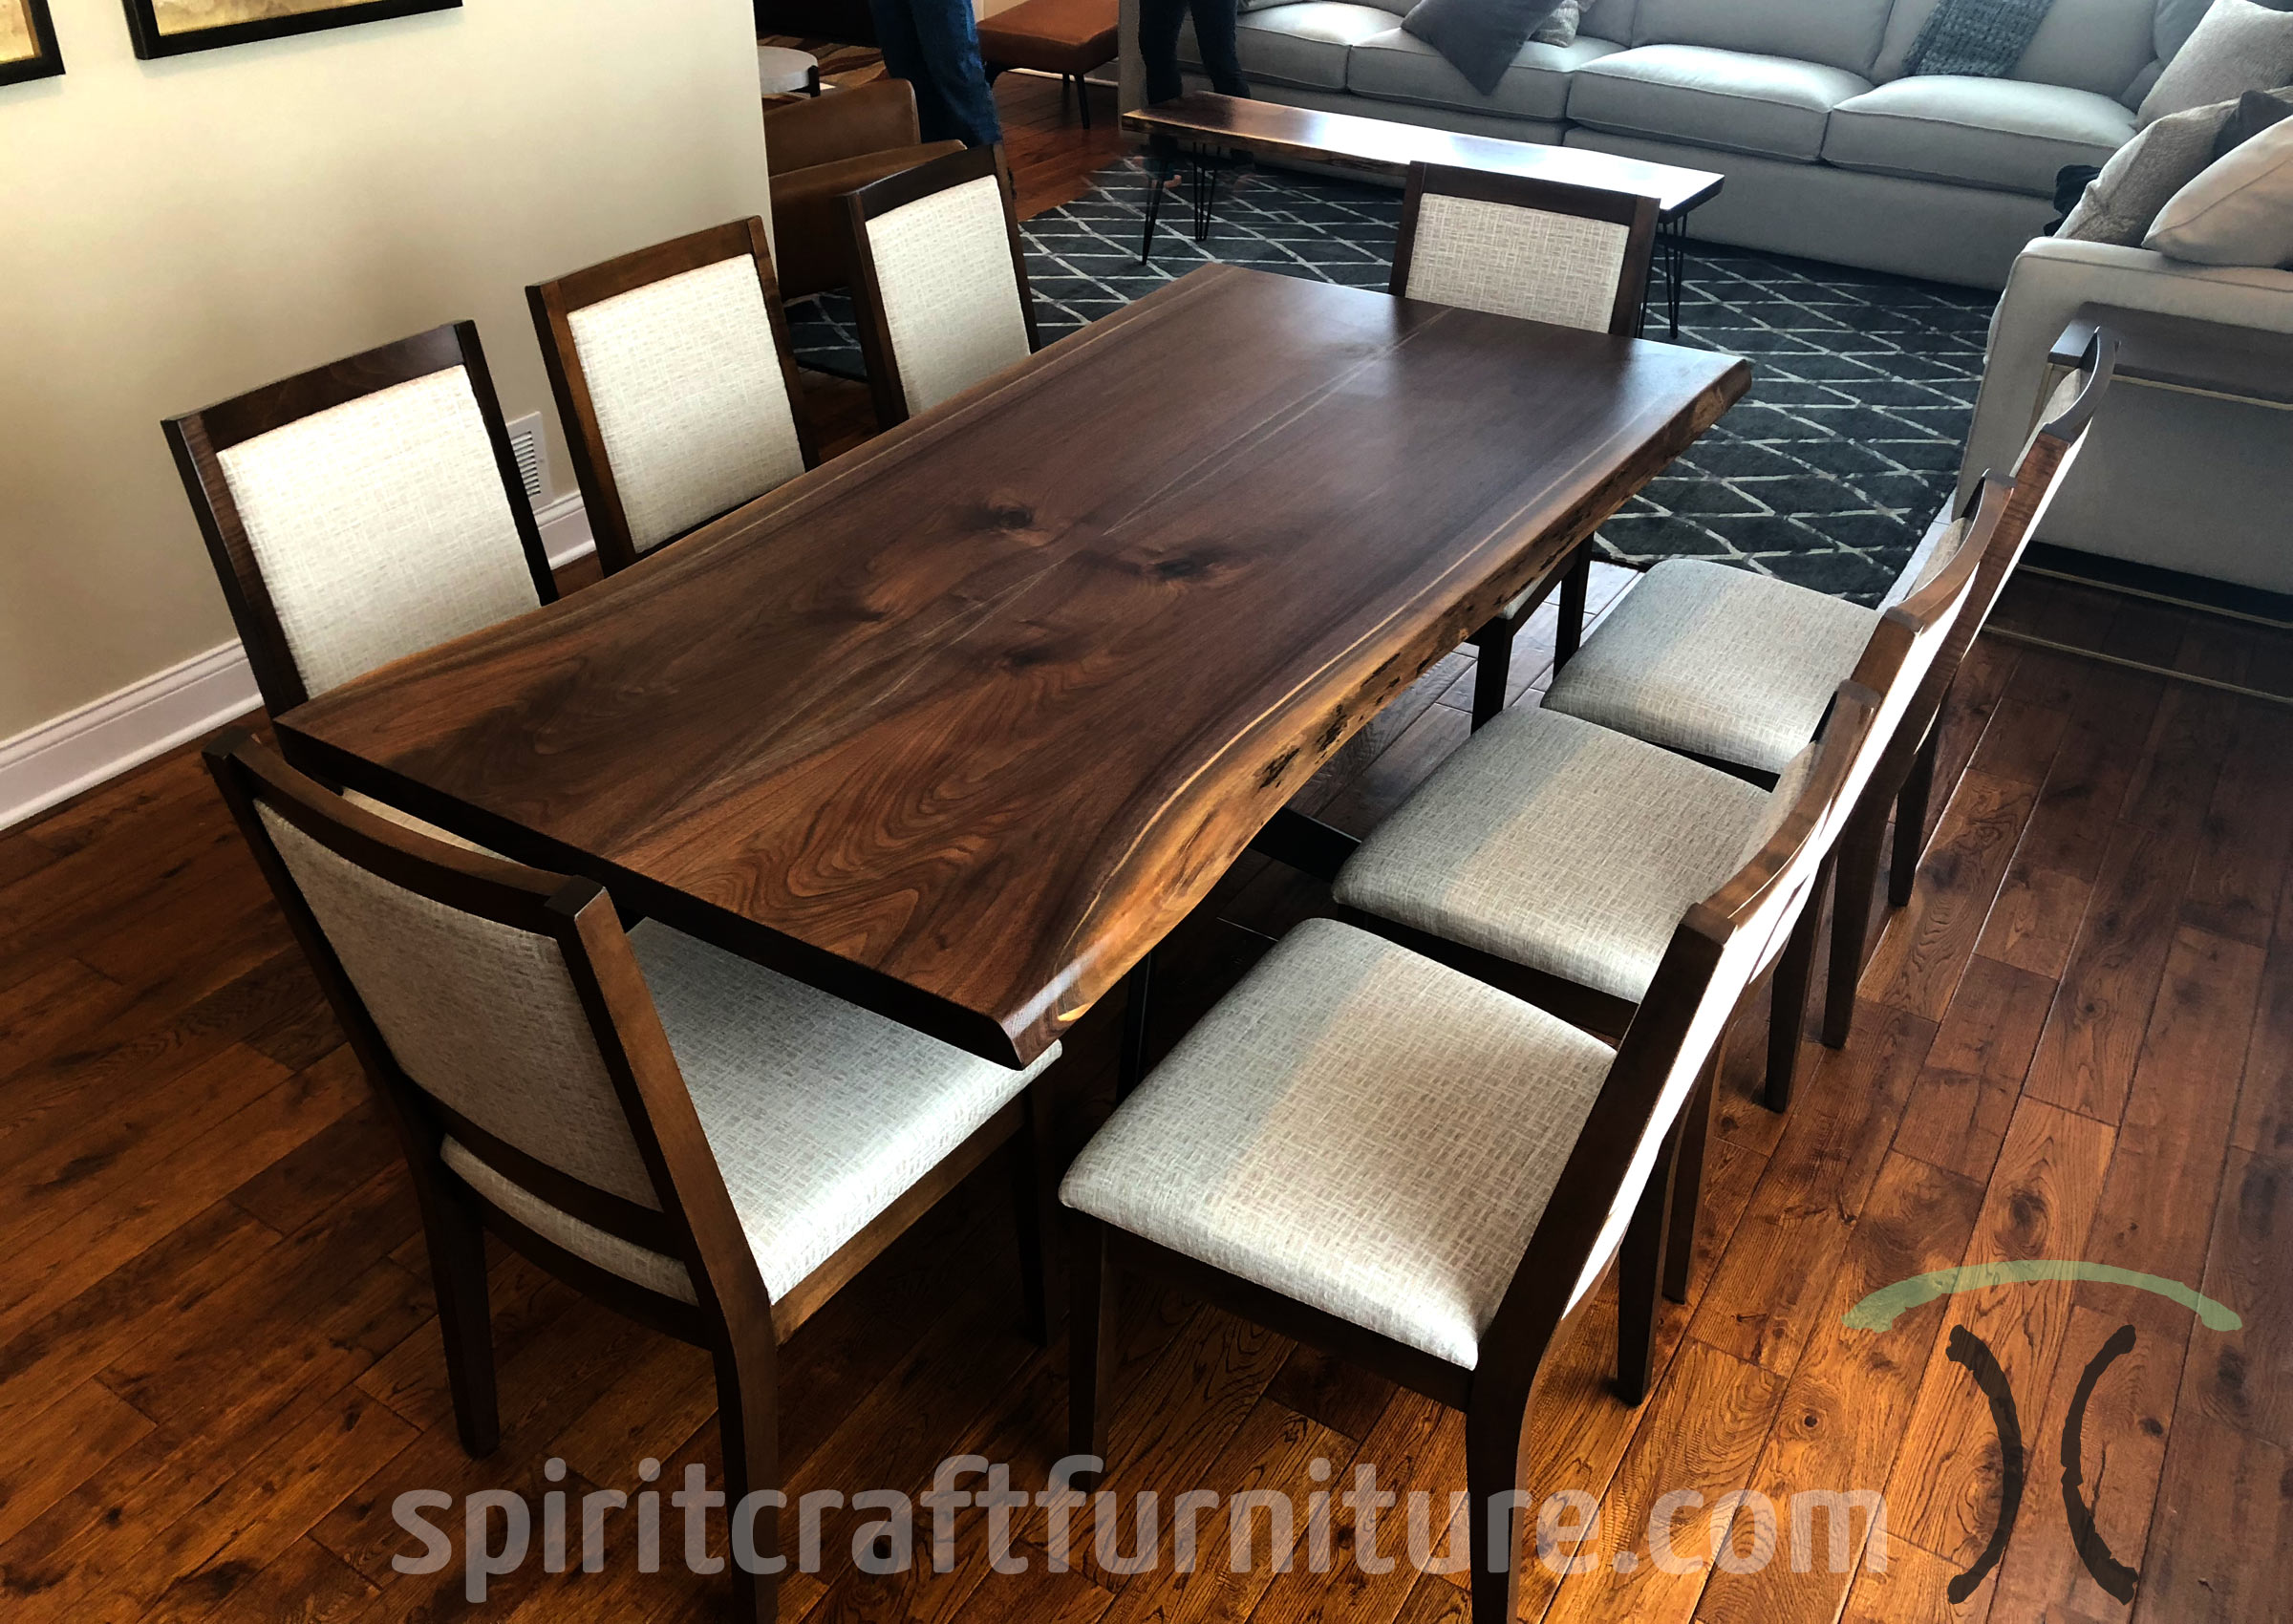 RH Yoder Wescott Side Chairs in Brown Hard Maple, Stained to Match Live Edge Walnut Dining Table in Chicago area, Illinois